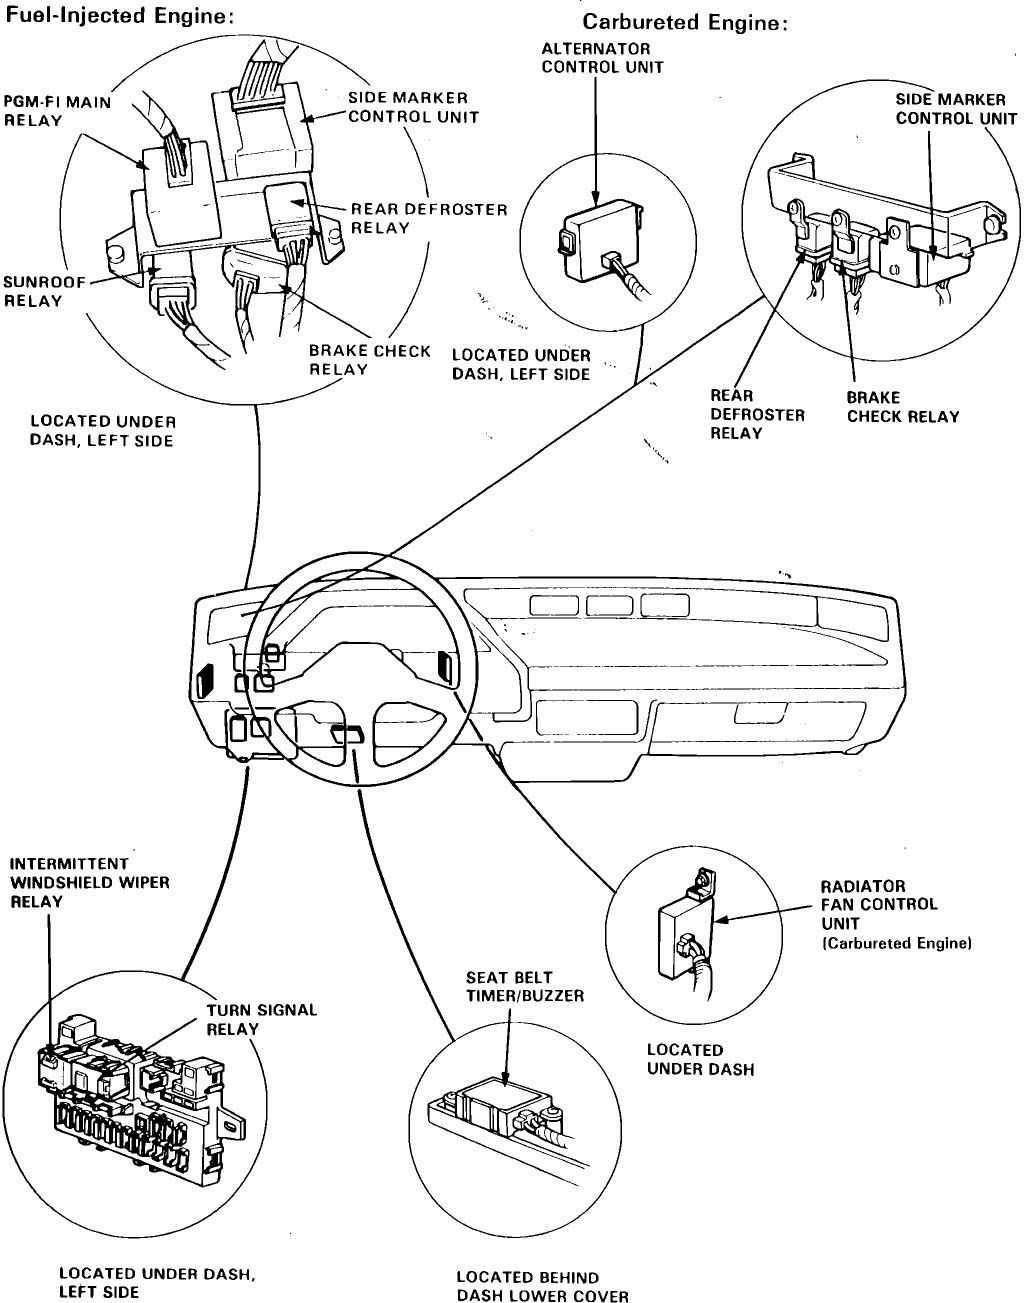 Honda Main Relay Wiring Diagram With Images Patent Drawing